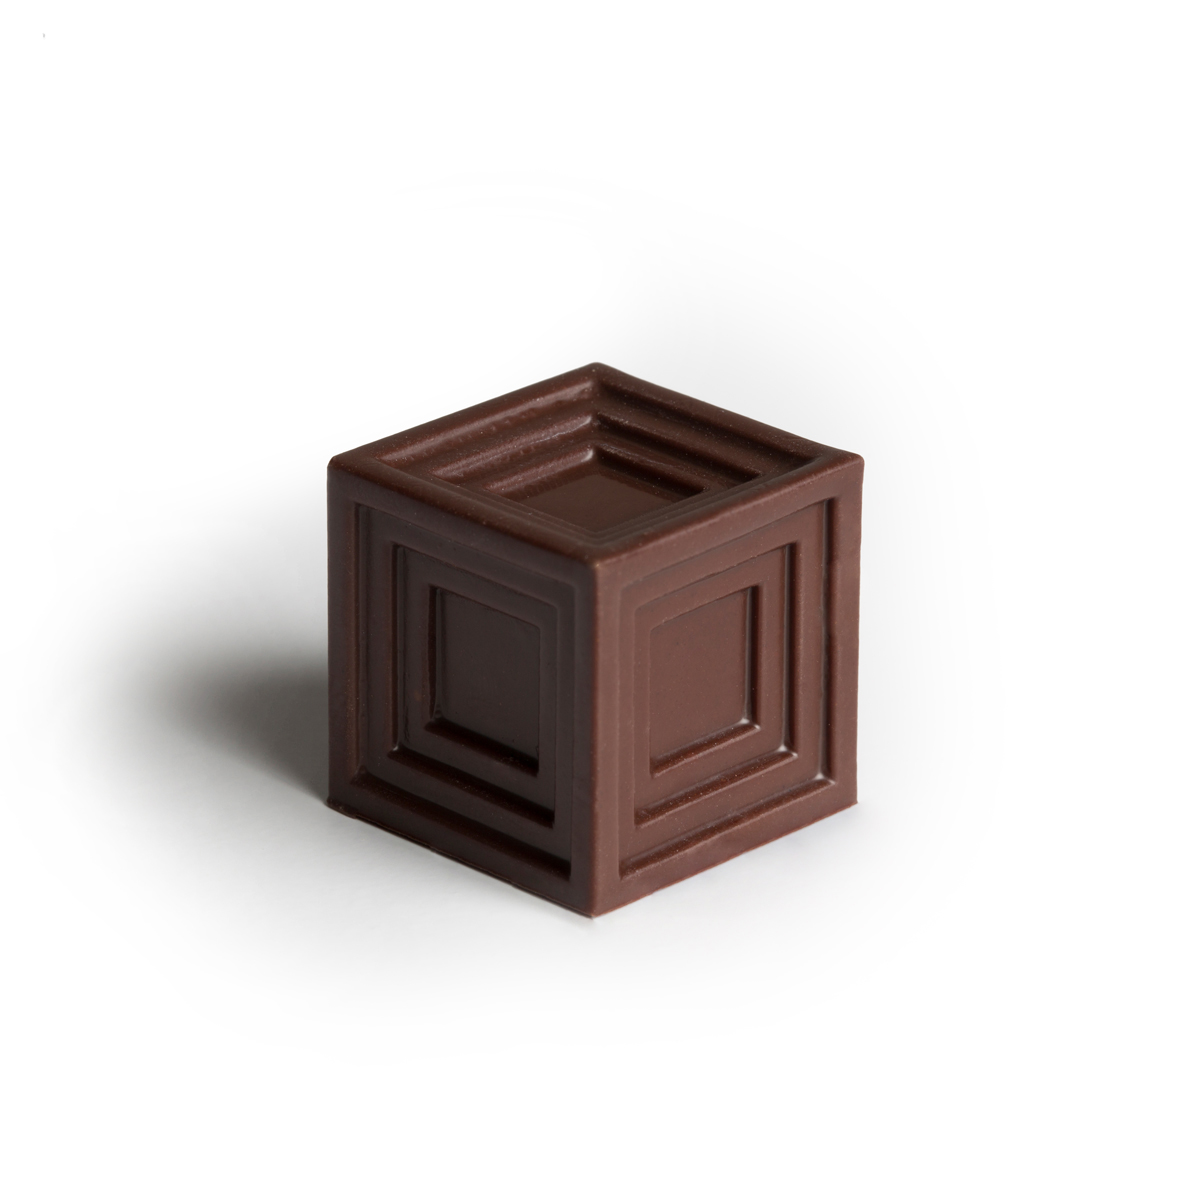 3D Printing Chocolates By Ryan L Foote